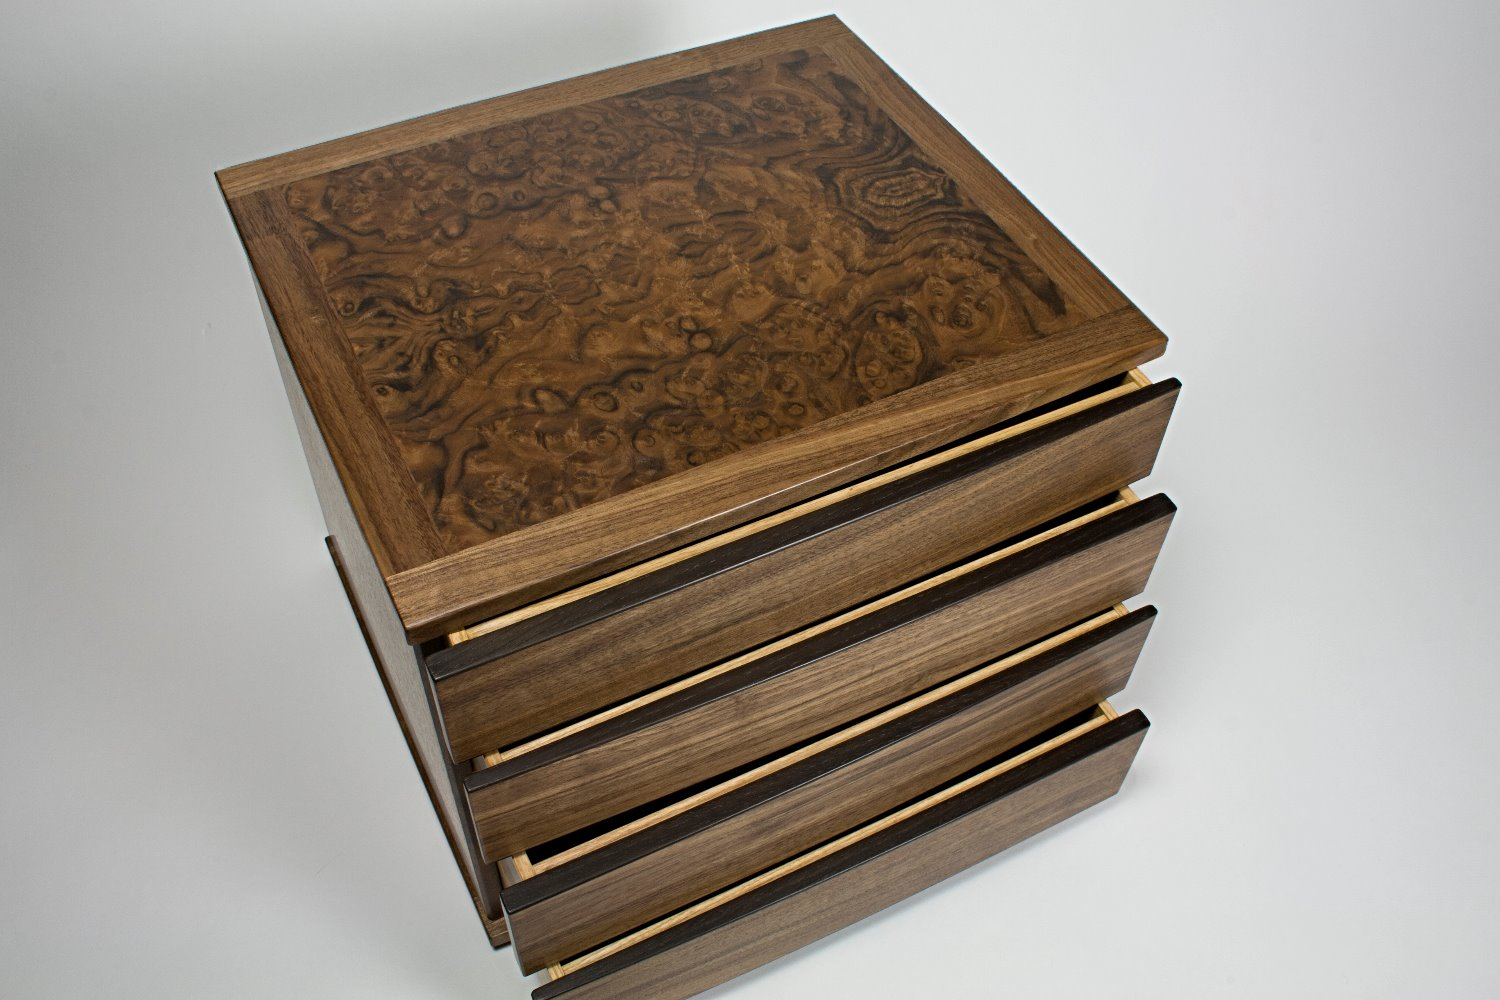 Walnut burr top panel on chest